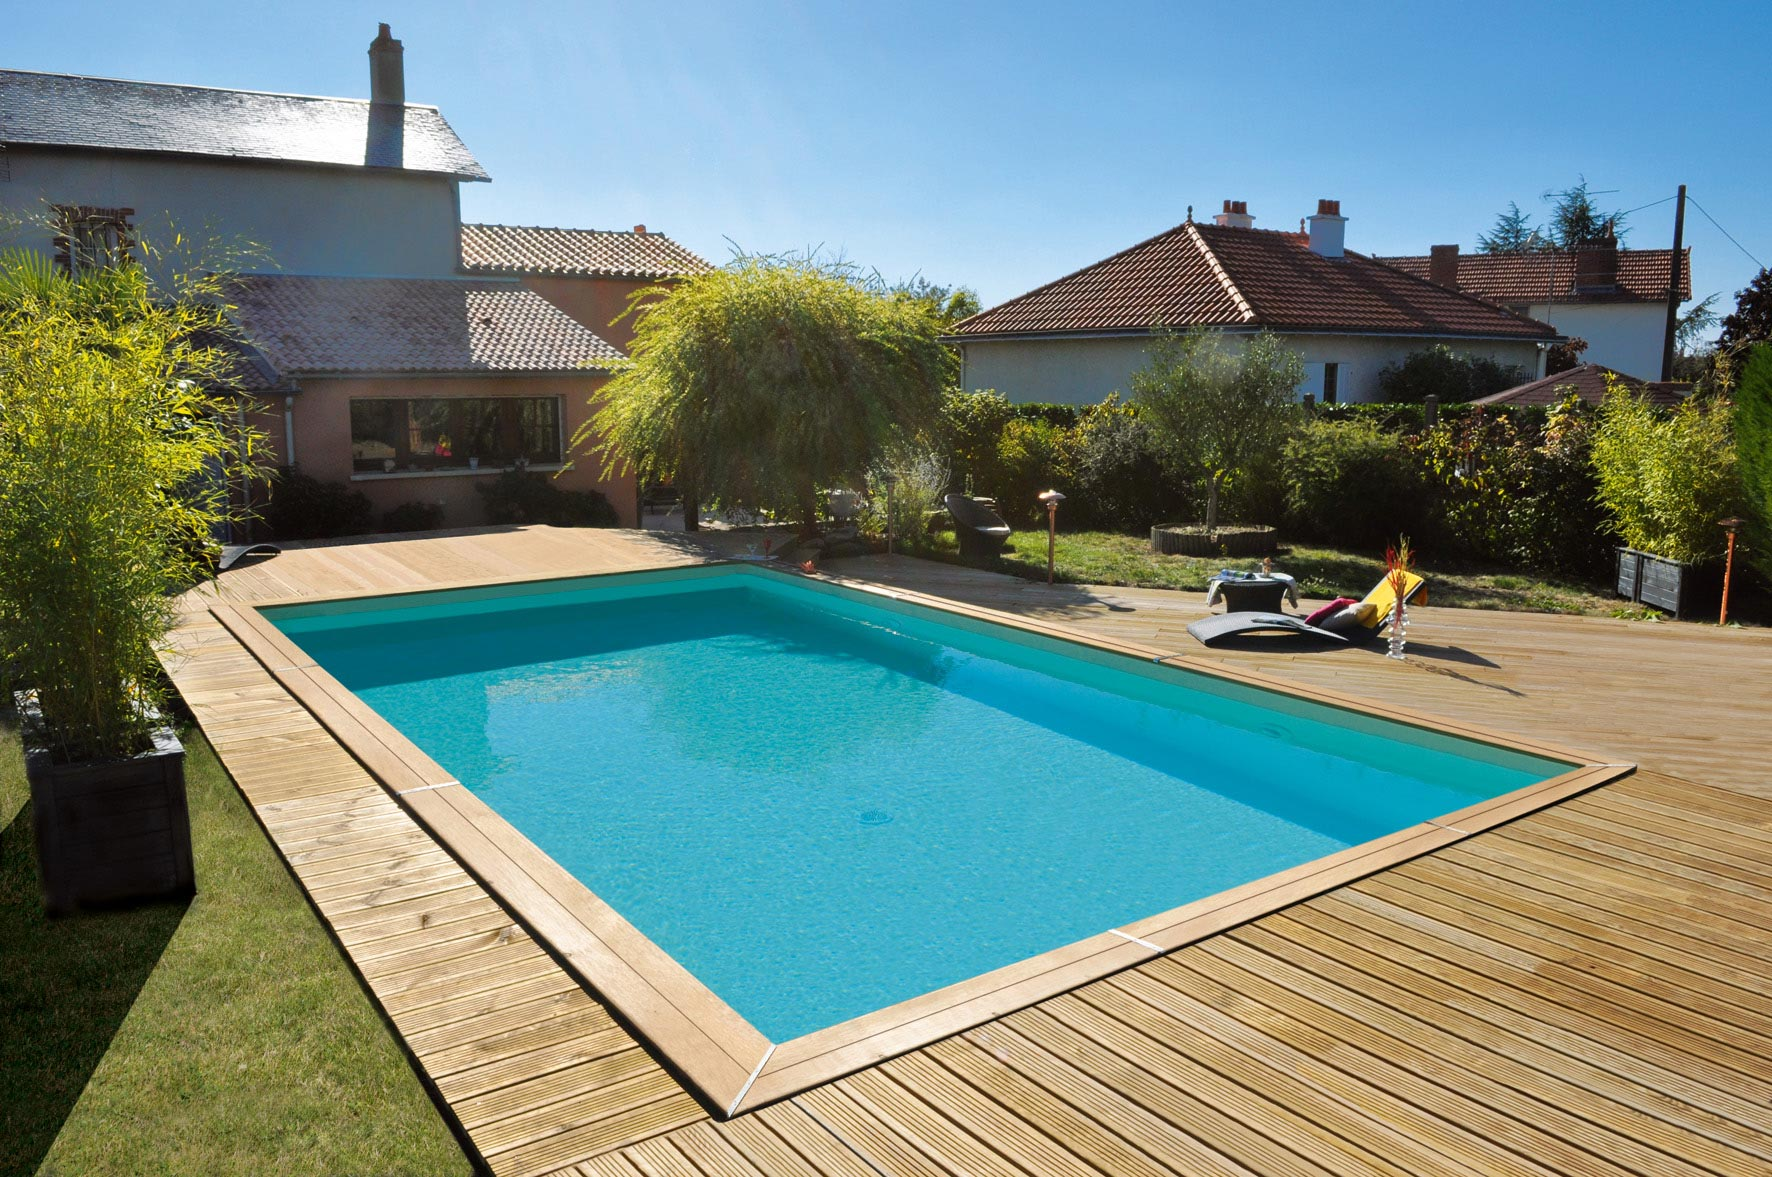 Piscine de jardin vacances arts guides voyages for Piscine jardin rectangle